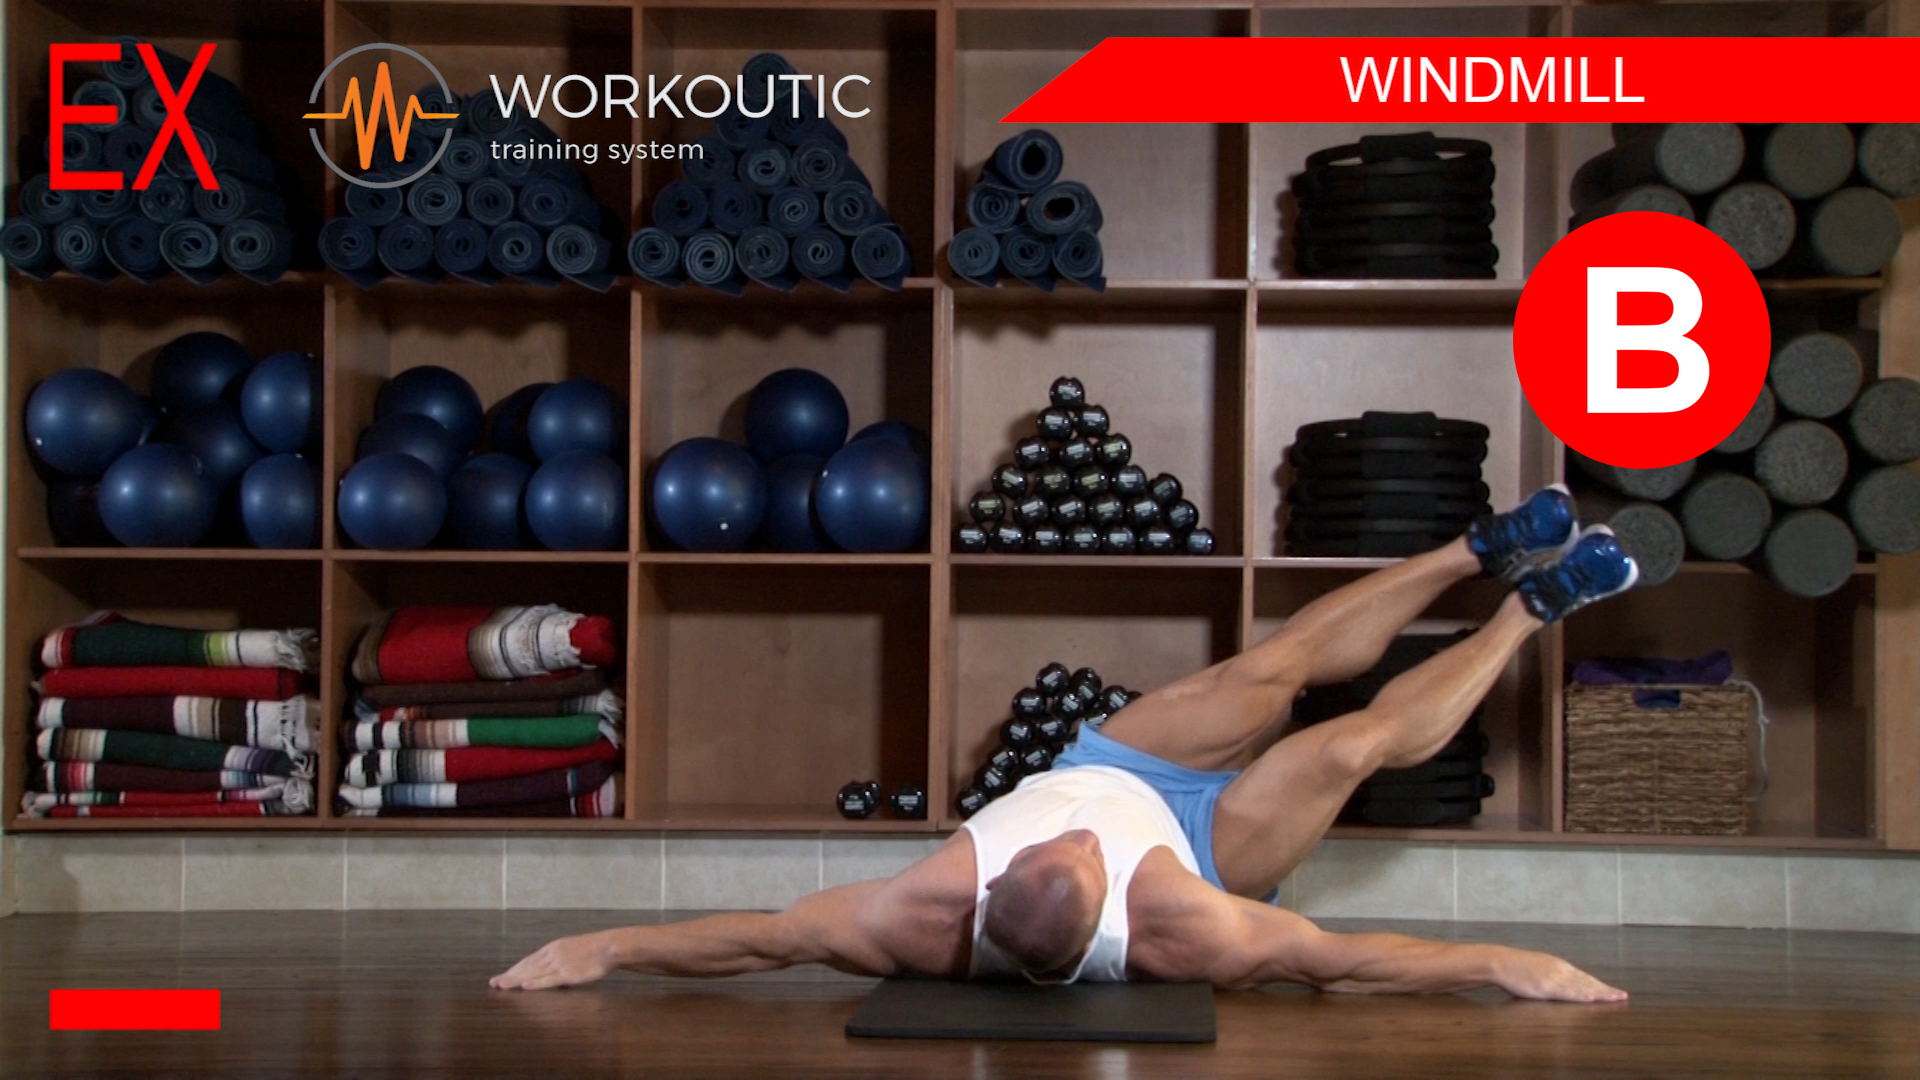 Abs Exercises - Workutic - 6 pack special - Windmill Exhale